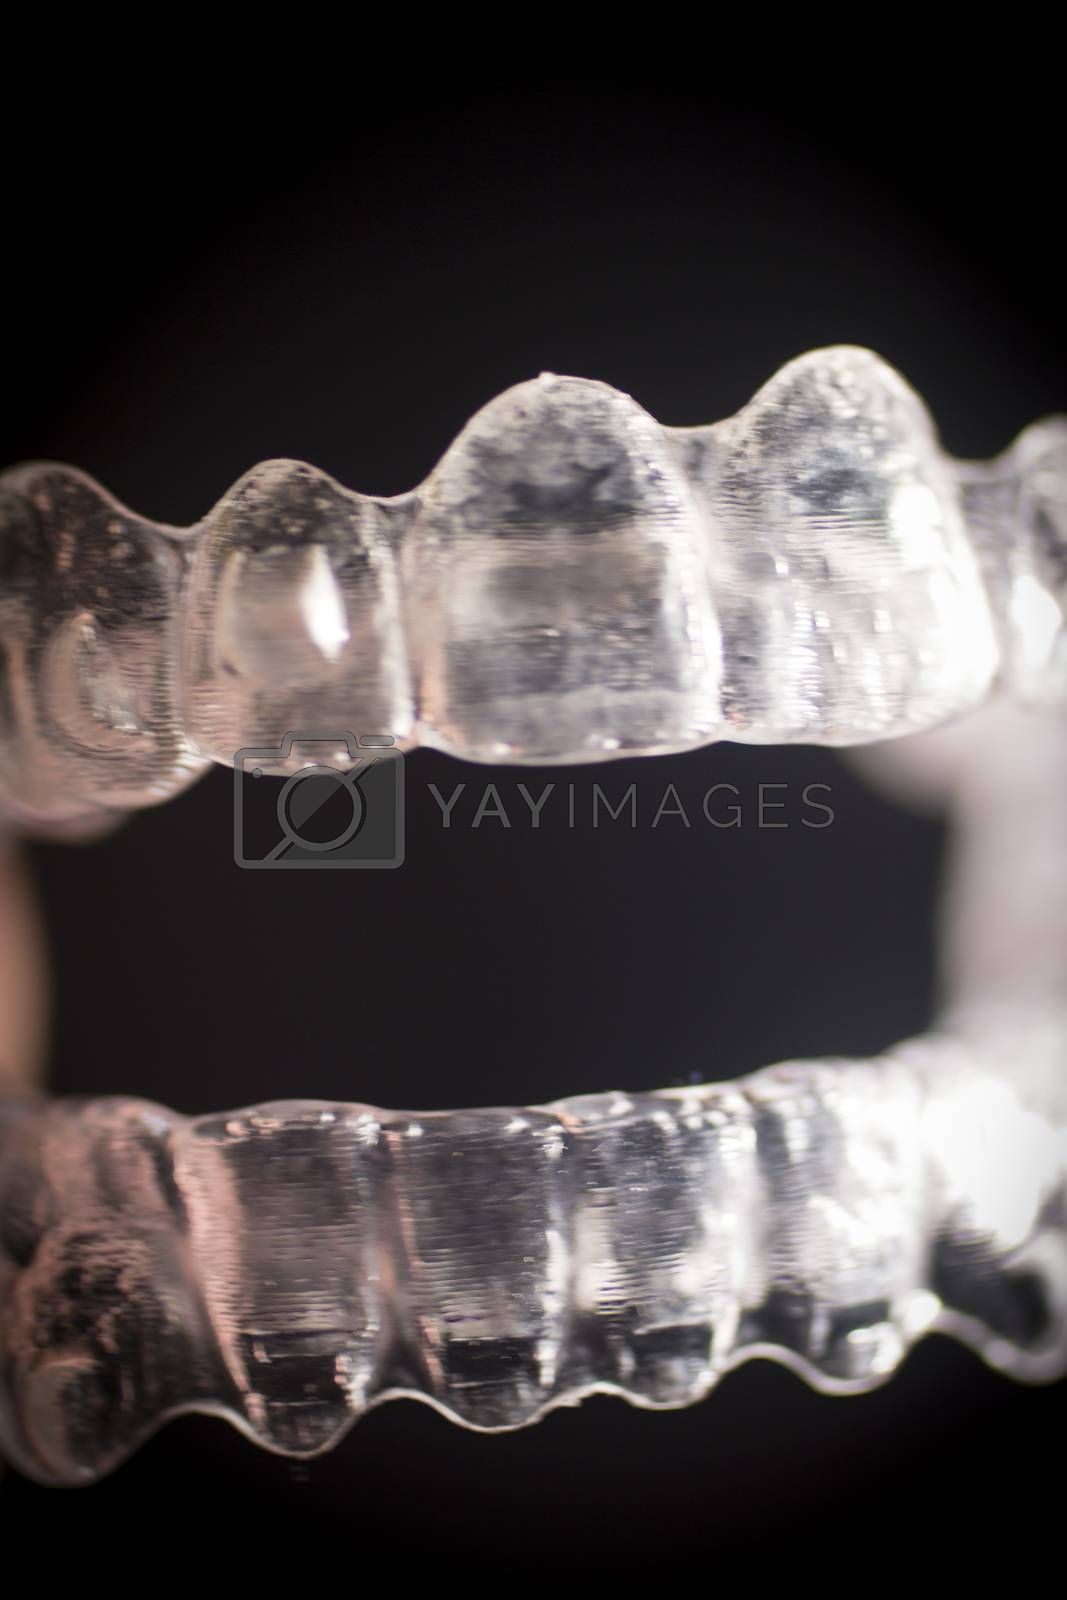 Close up macro photo of invisible transparent plastic dental brackets set against black studio background. Artistic color digital photo with shallow depth of focus.